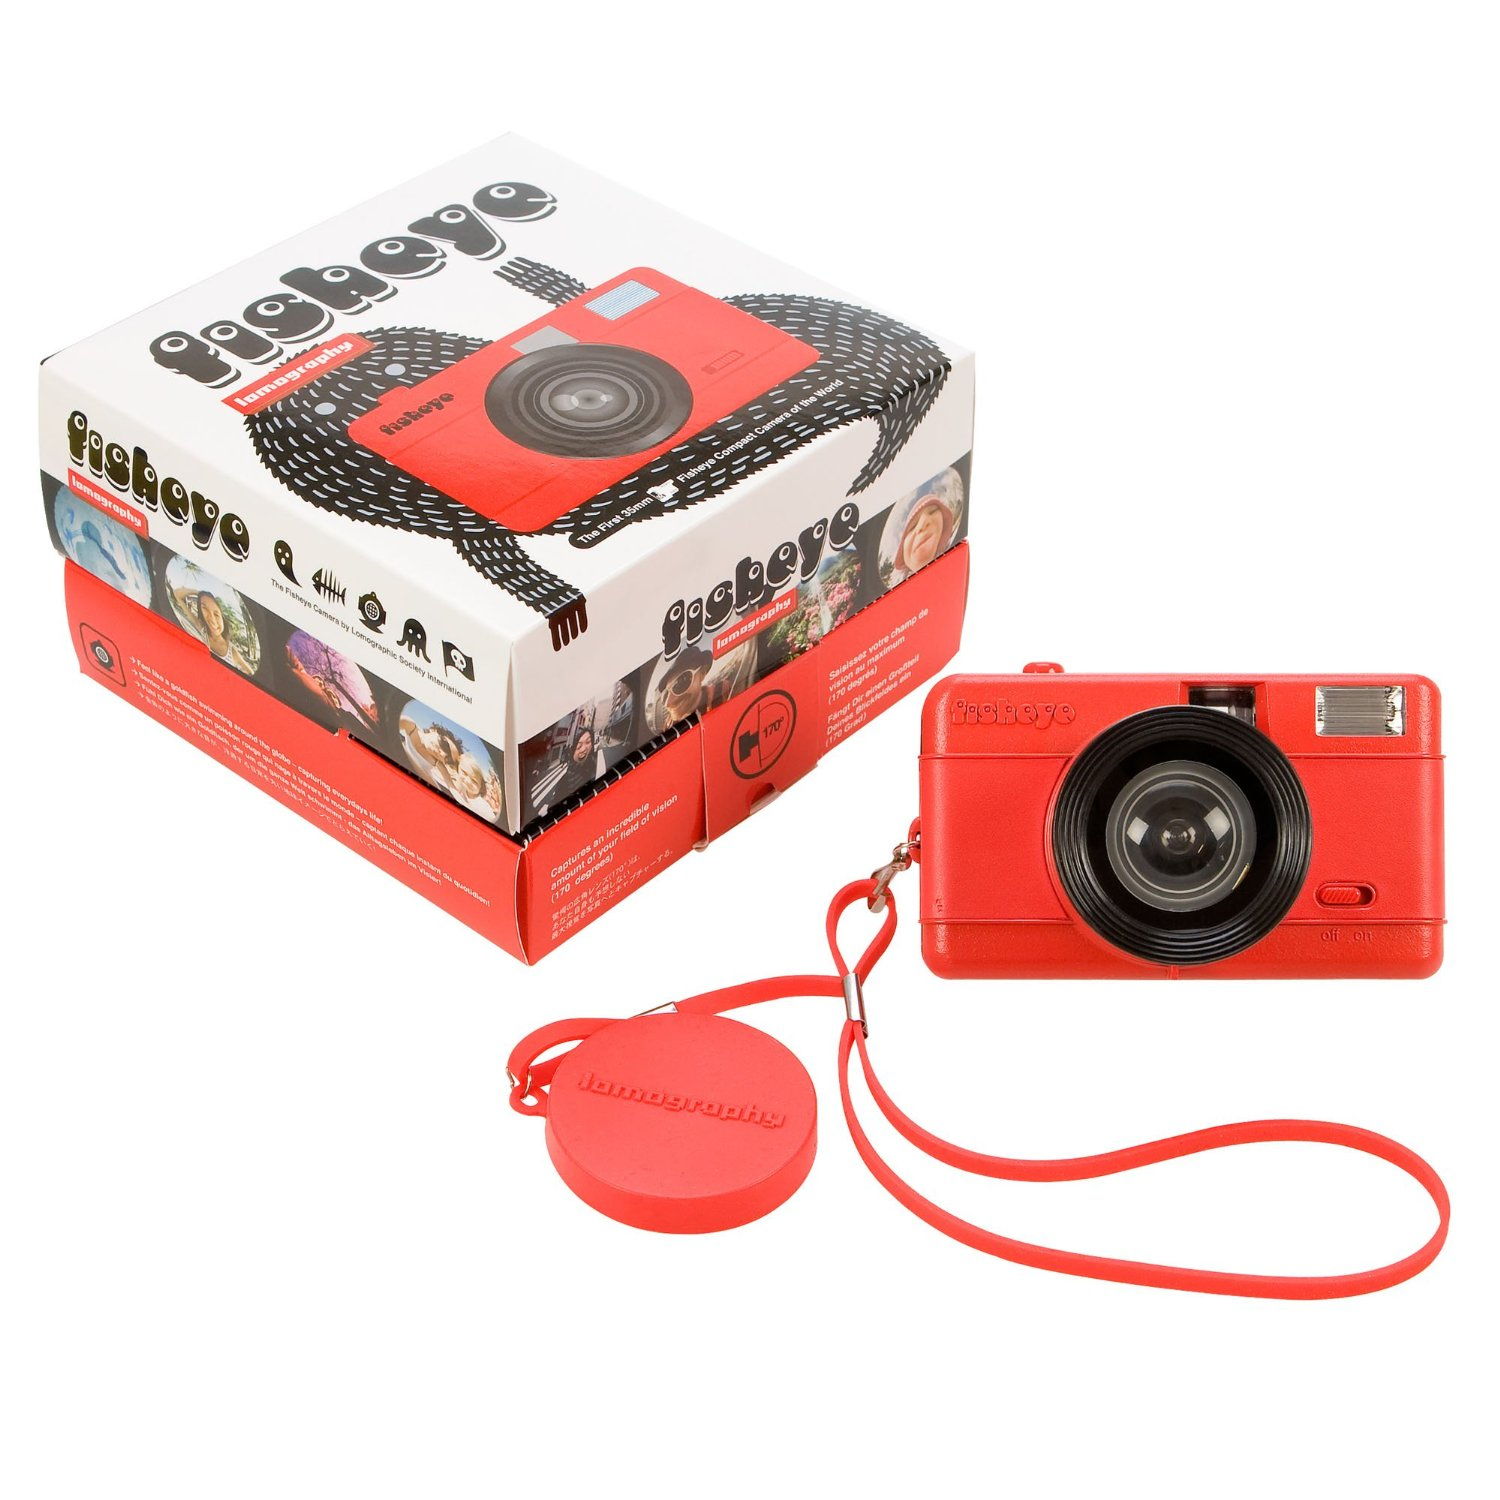 Lomography FishEye Point-n-Shoot 35mm Camera, Red